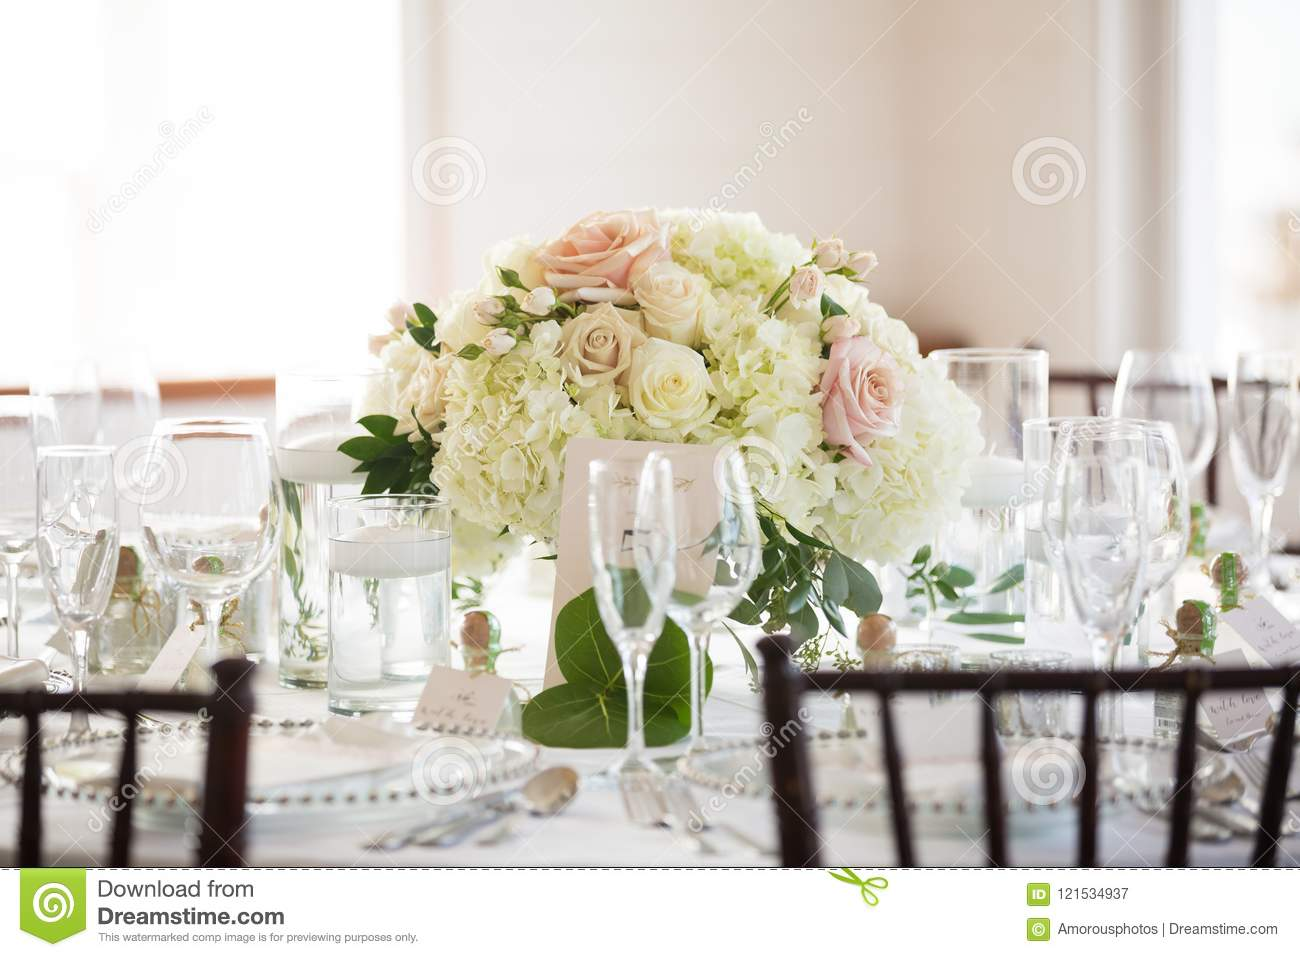 Floral Centerpiece On Wedding Reception Table Stock Image Image Of